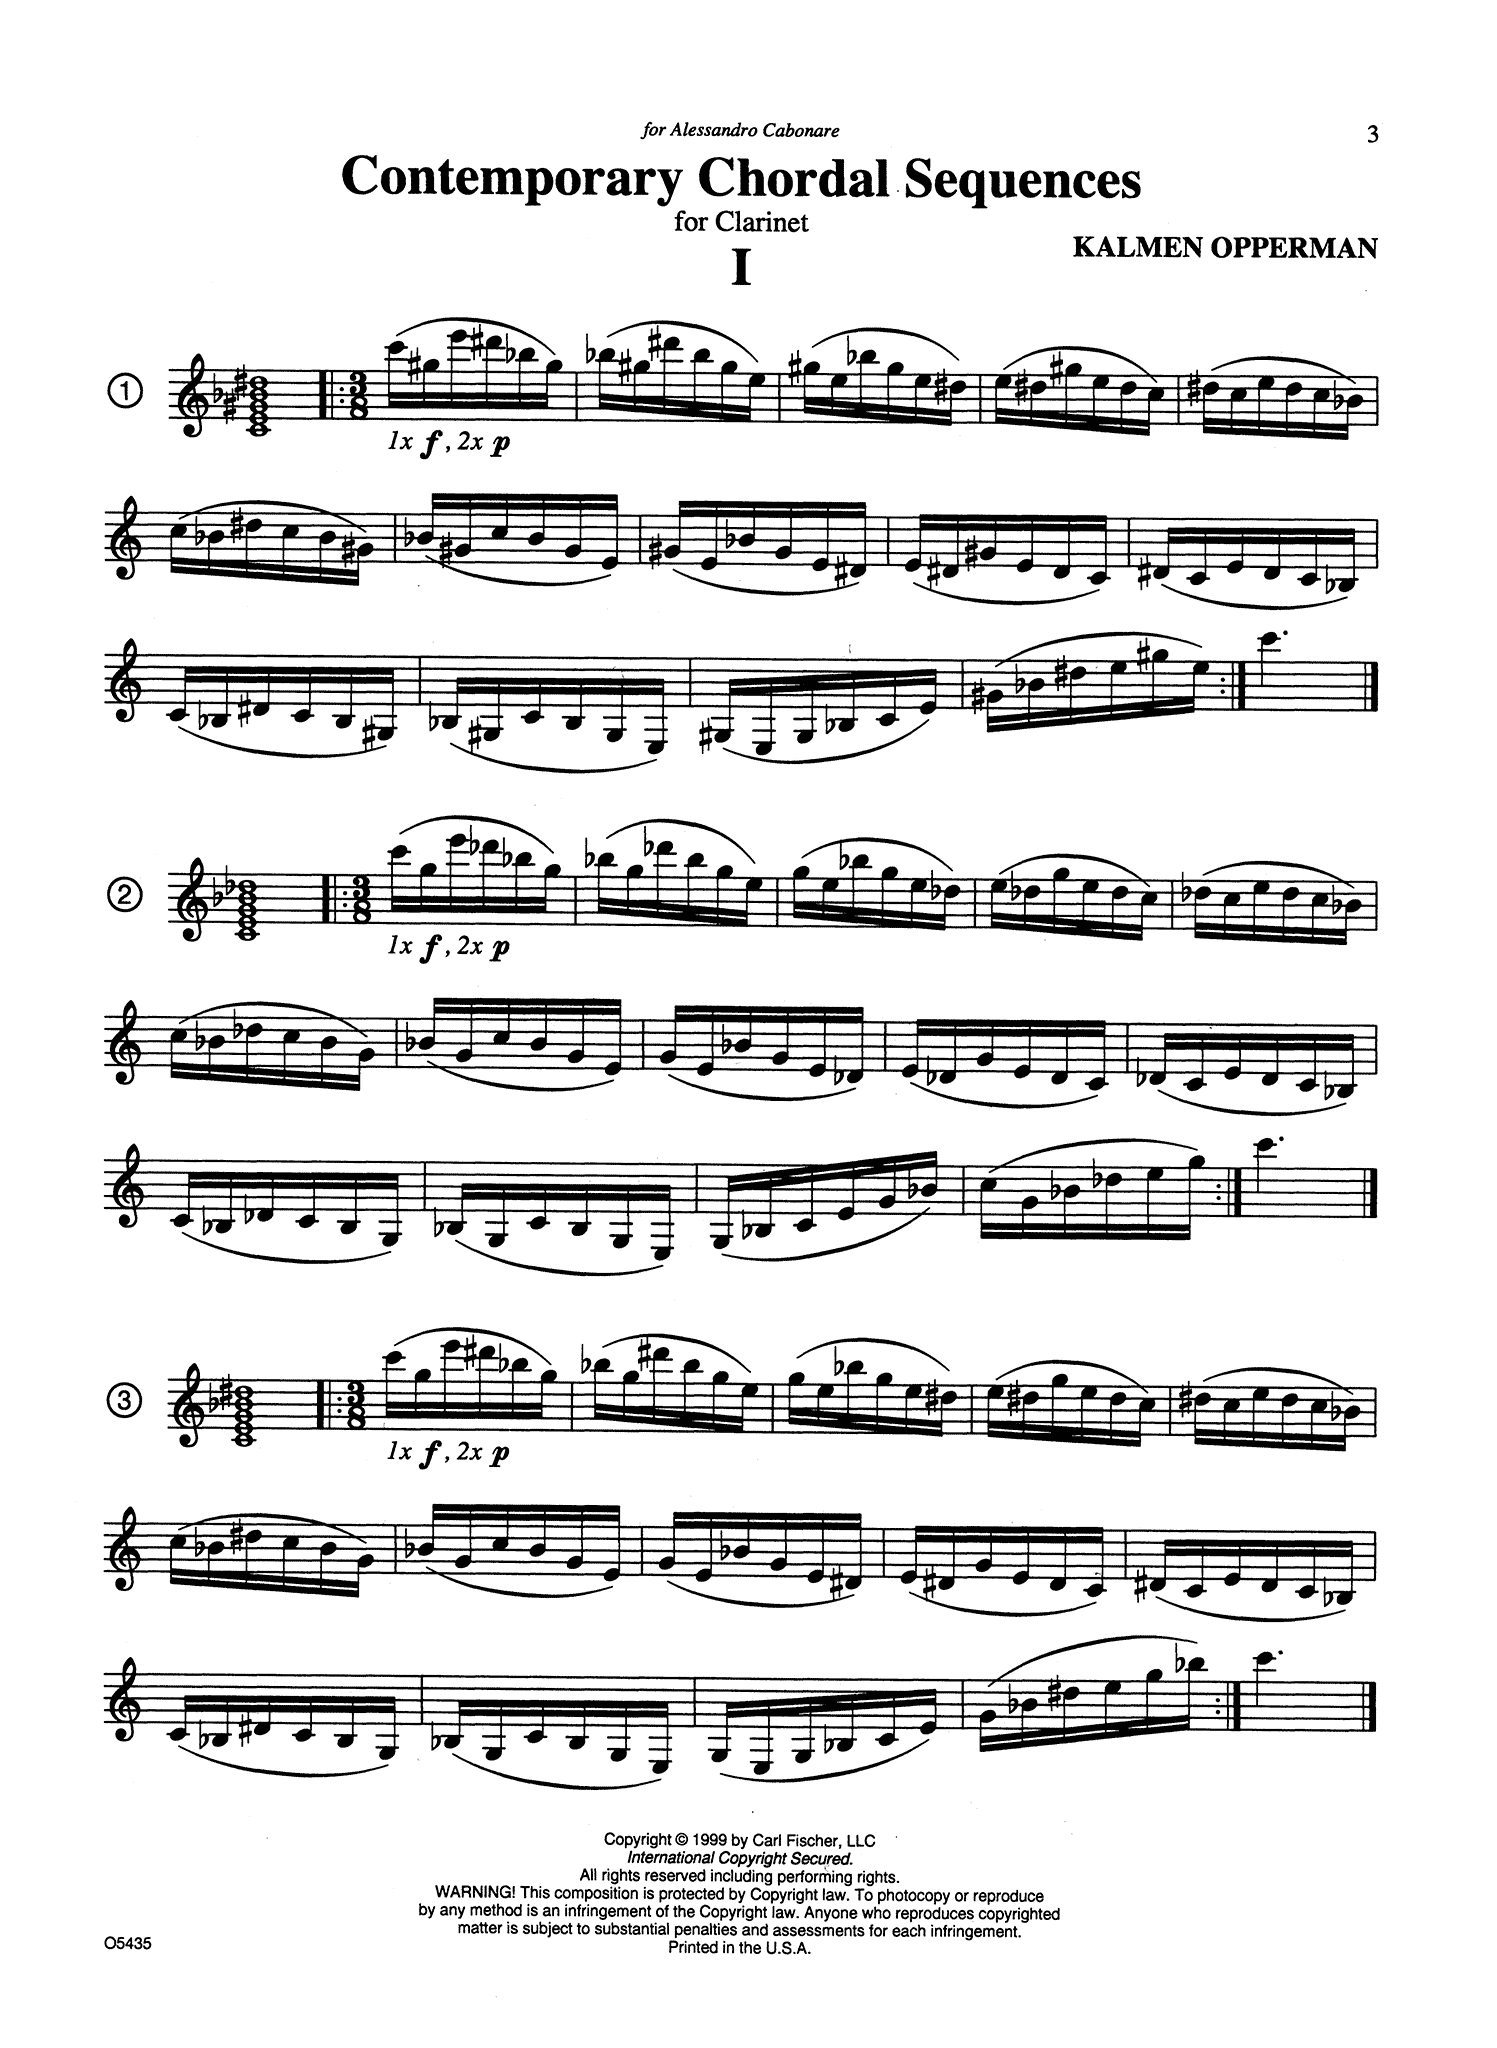 Advanced Contemporary Chordal Sequences for Clarinet Page 3